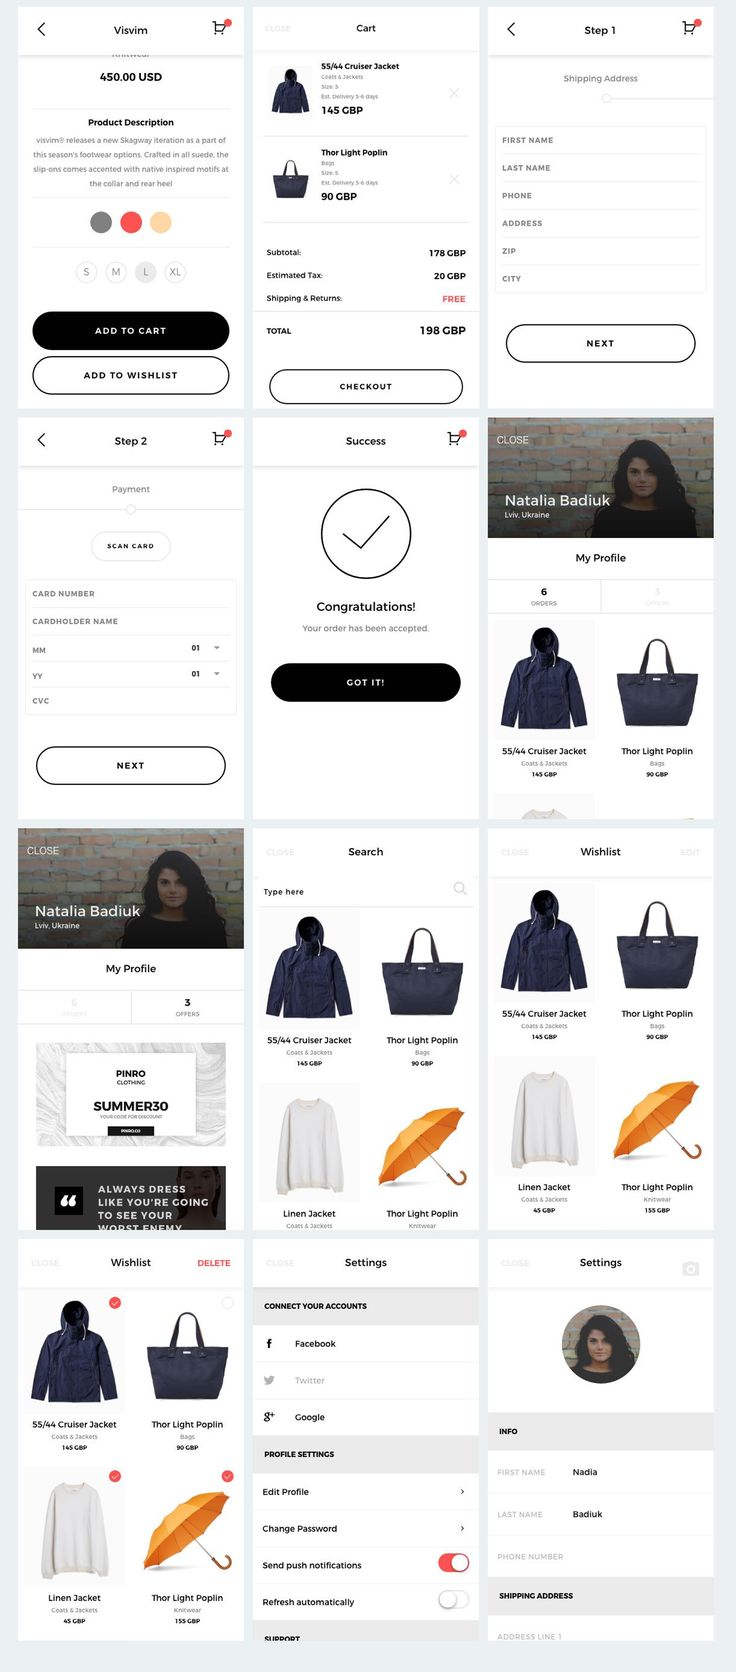 Check out the Order details summary and how the total is displayed. I think we c…